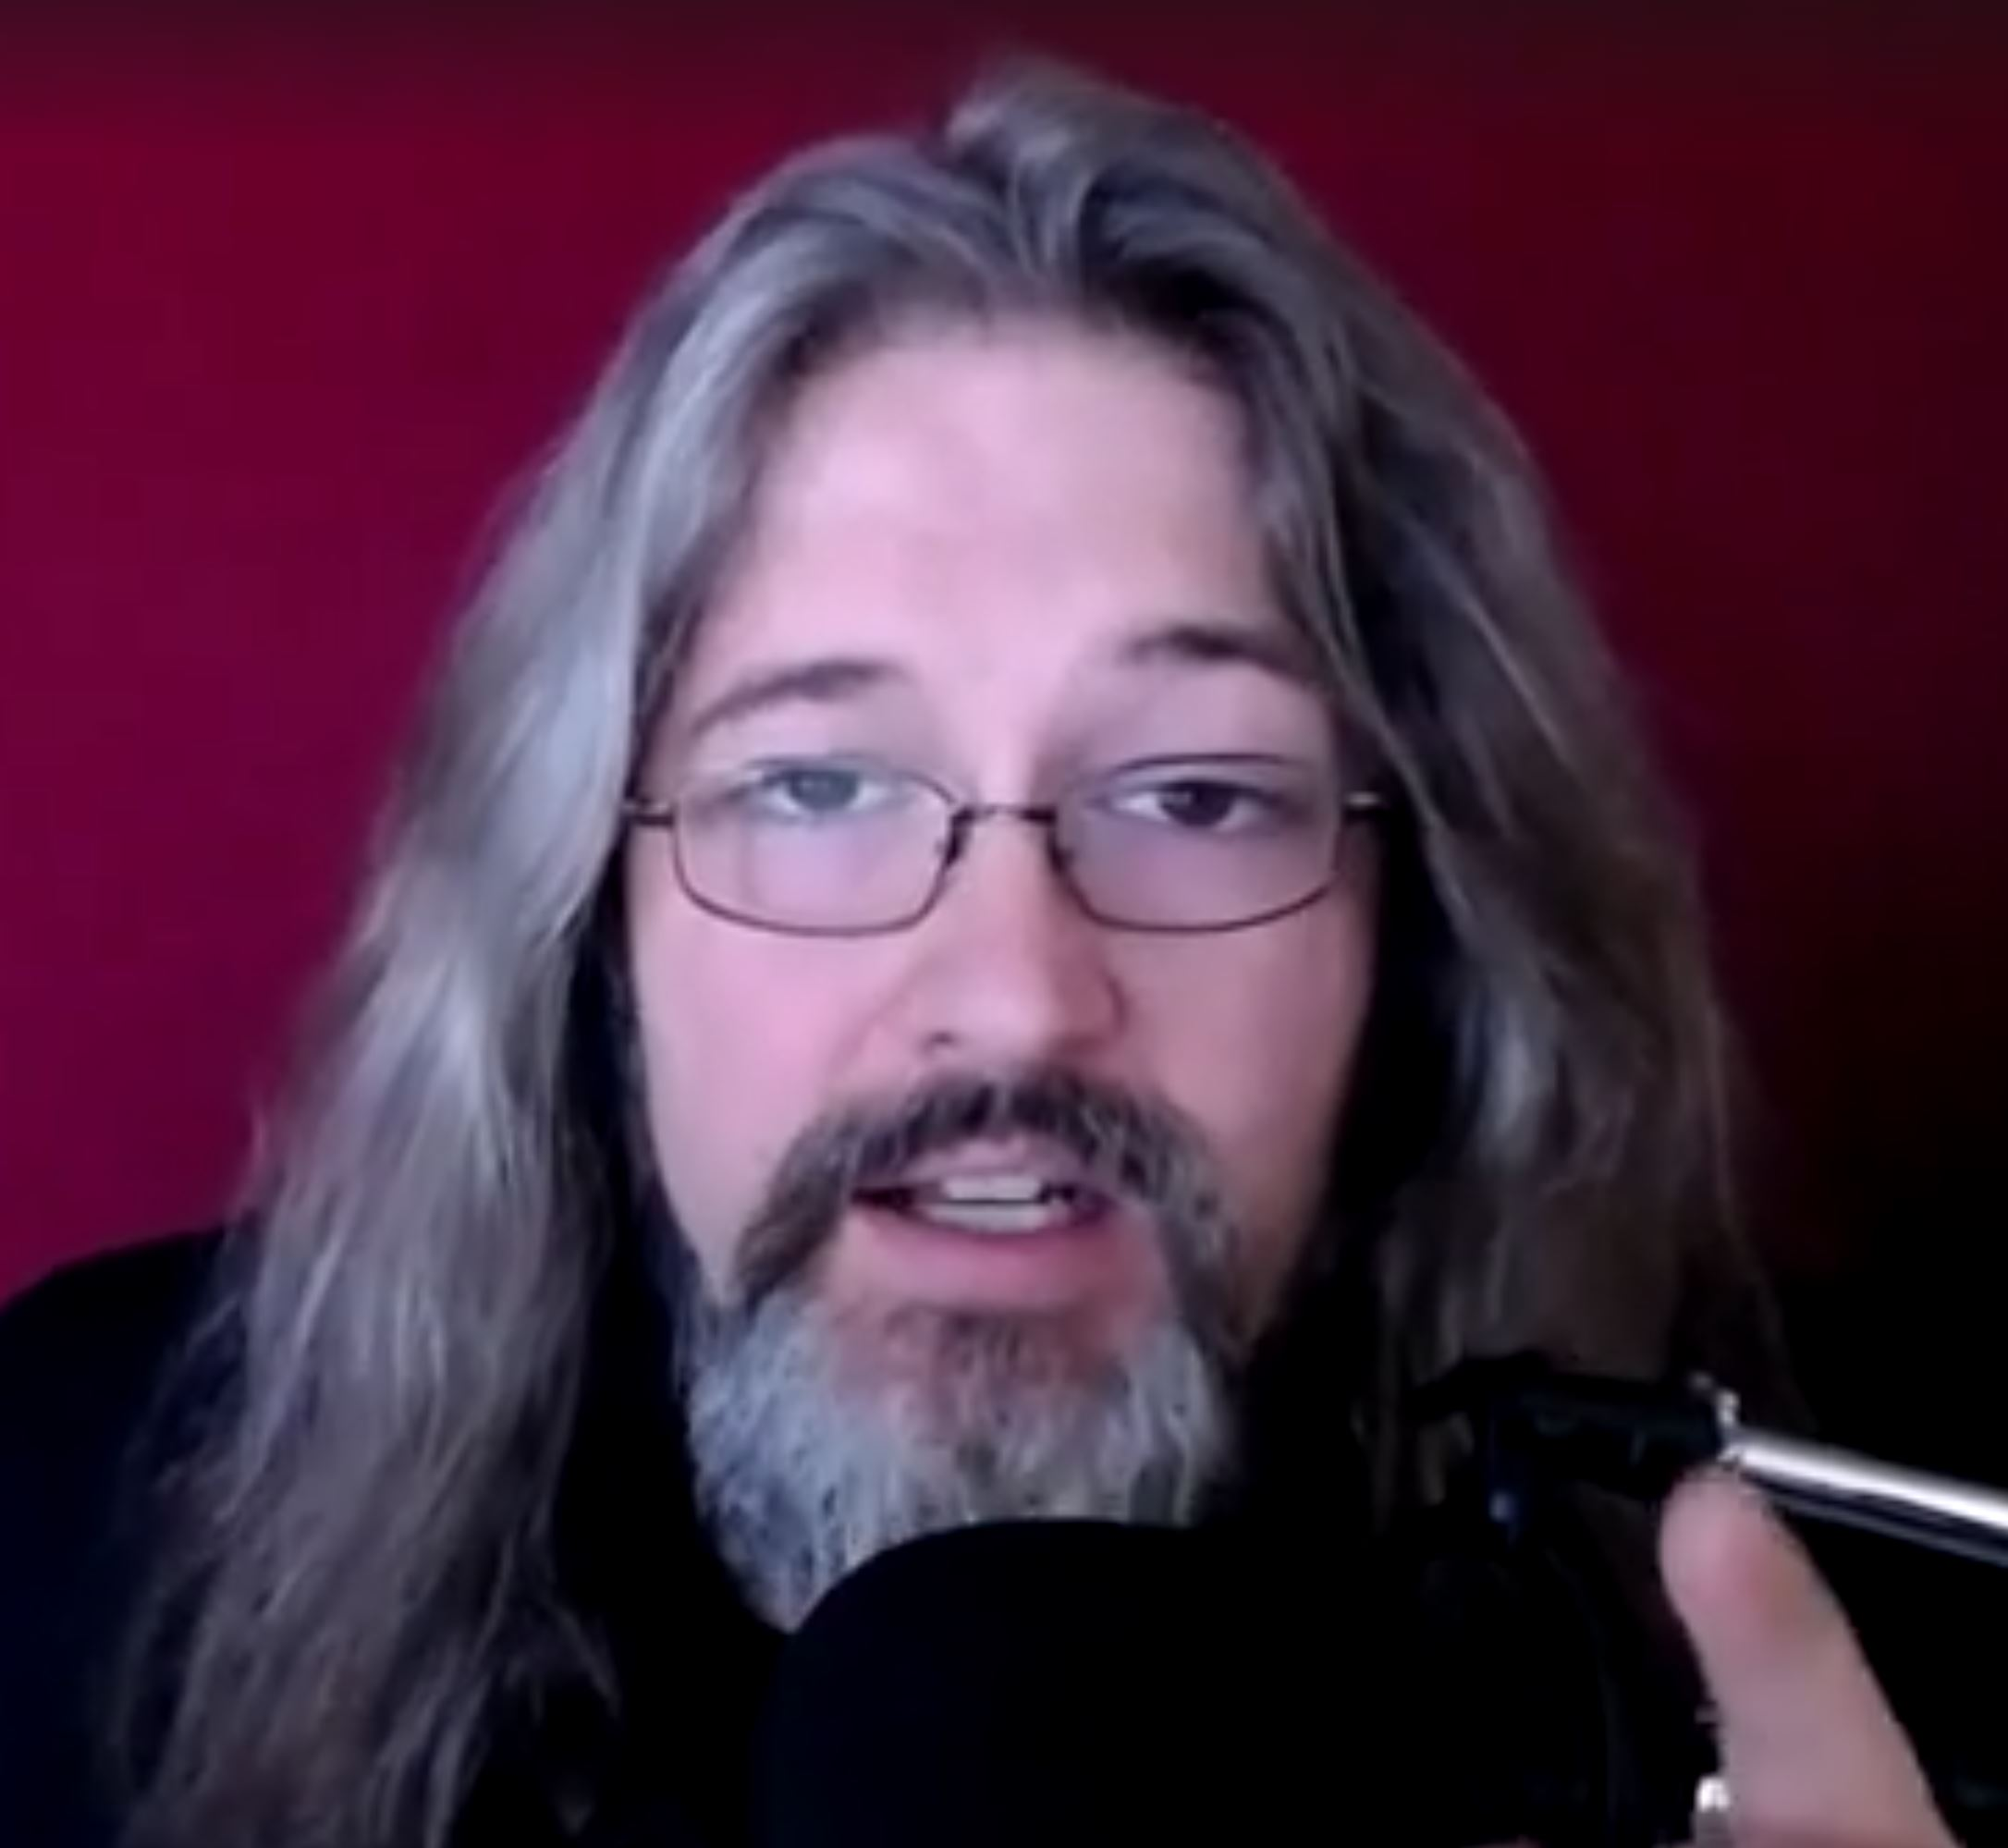 VIDEO BROADCAST: Firearm Fear Mongering By The Liberal Party And The Media Party